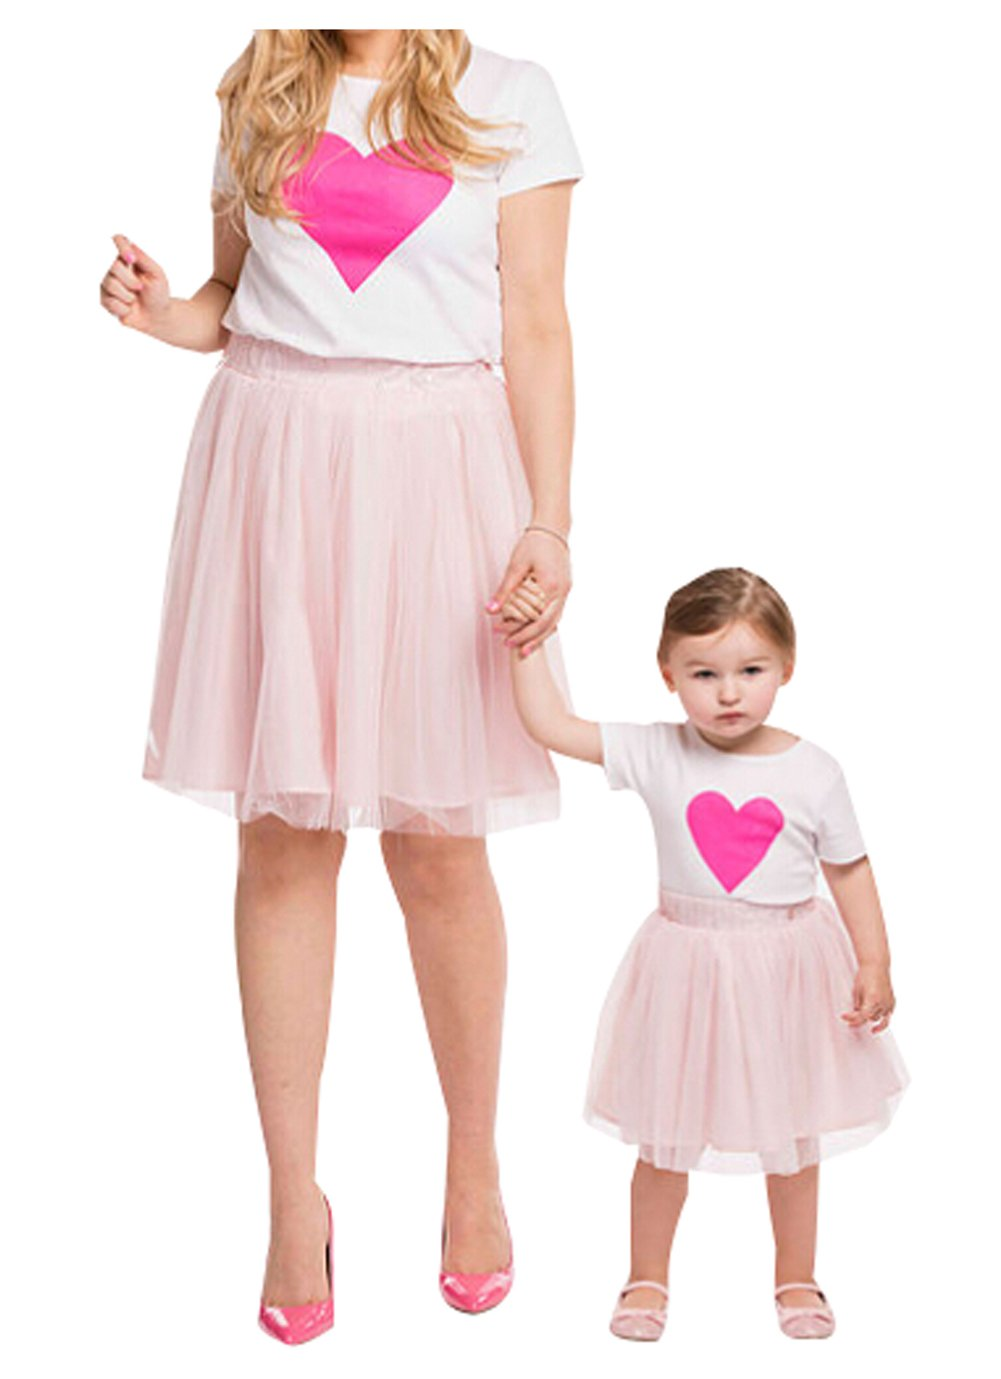 Family Matching Mother and Daughter Heart T-Shirts Tops Pink Skirt